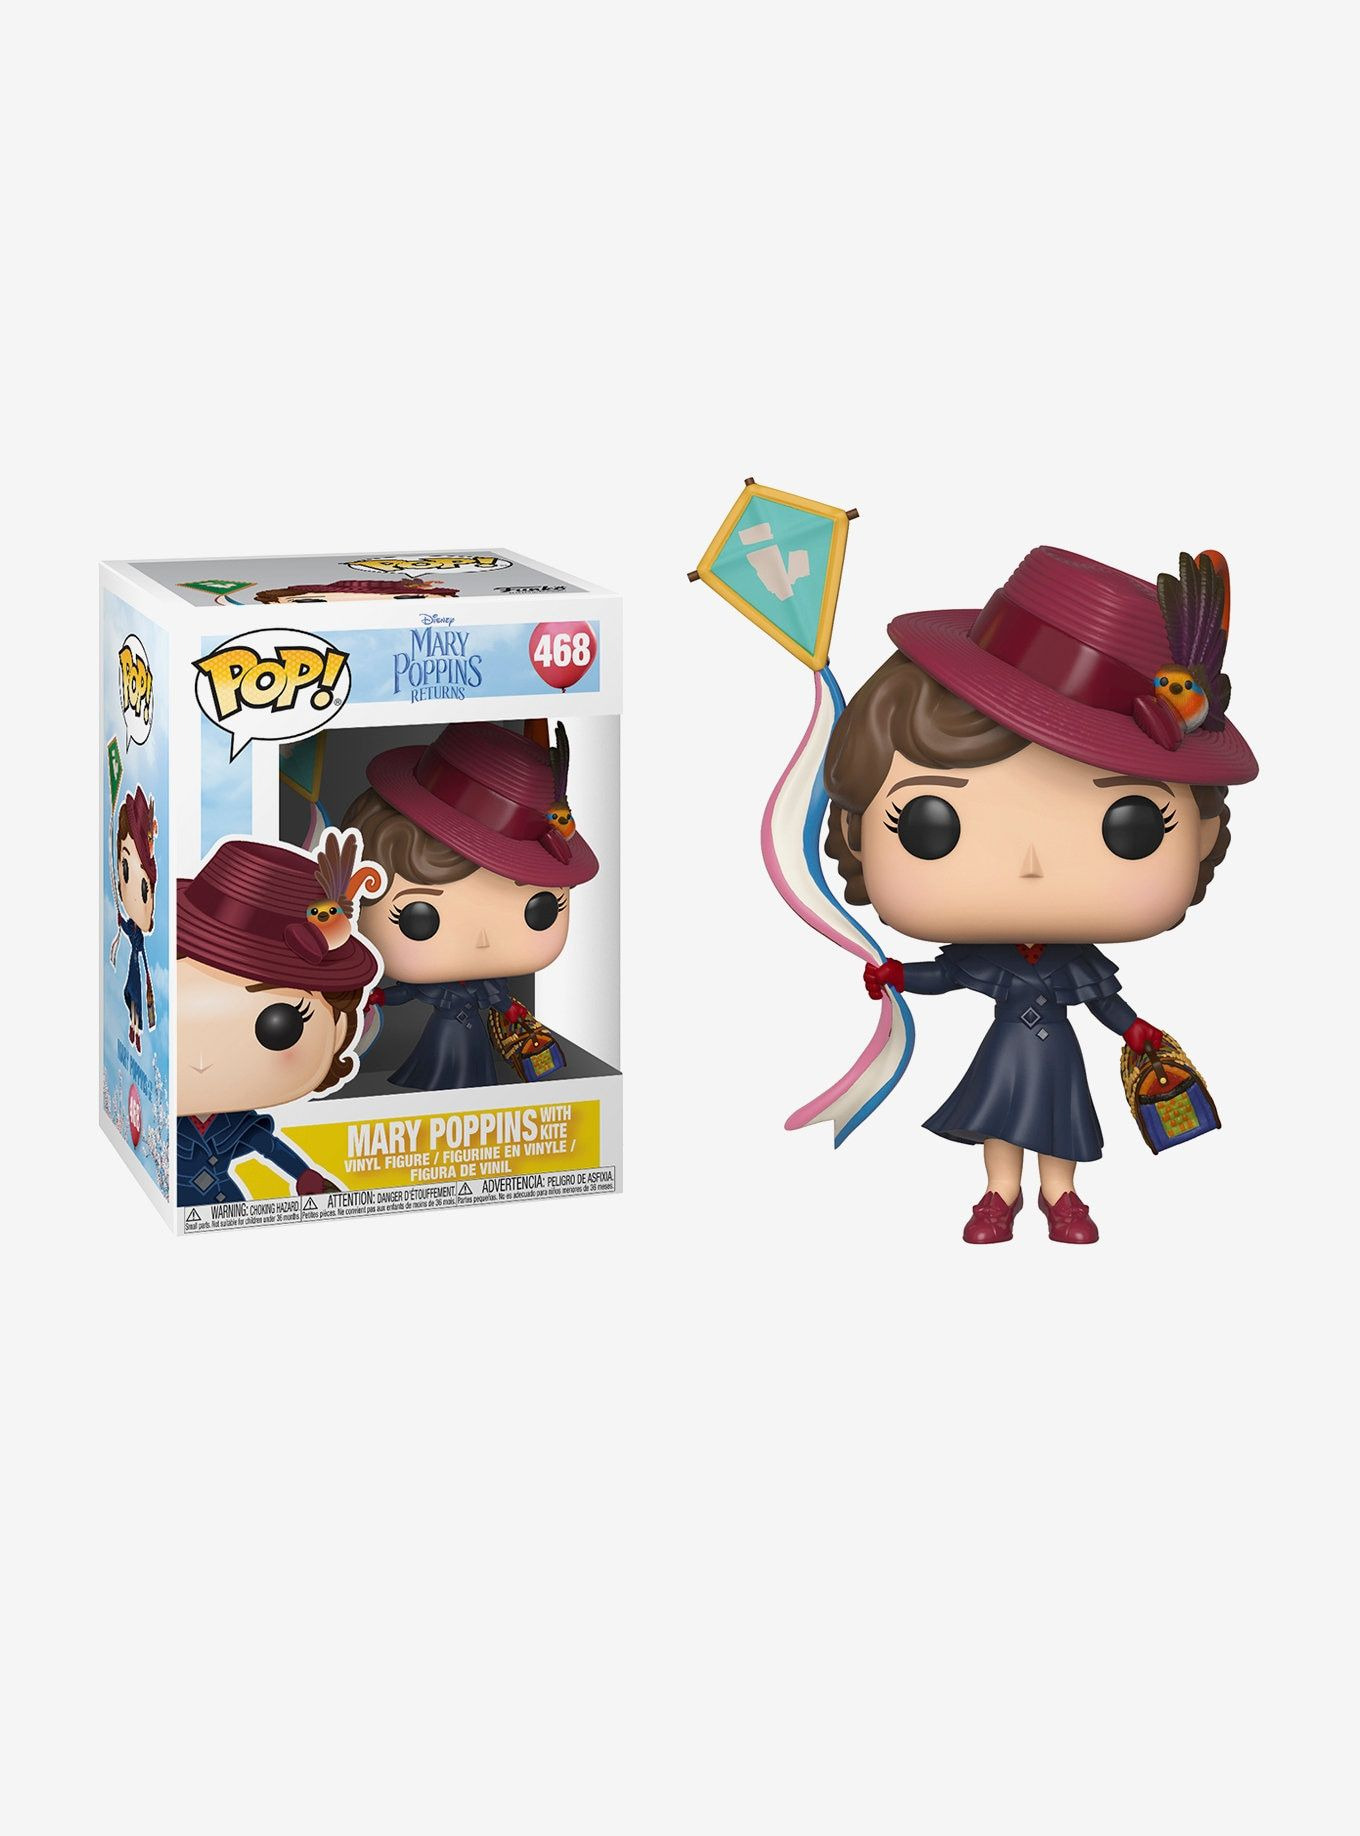 dbd6a74491f Funko Mary Poppins Returns Pop! Mary Poppins With Kite Vinyl Figure